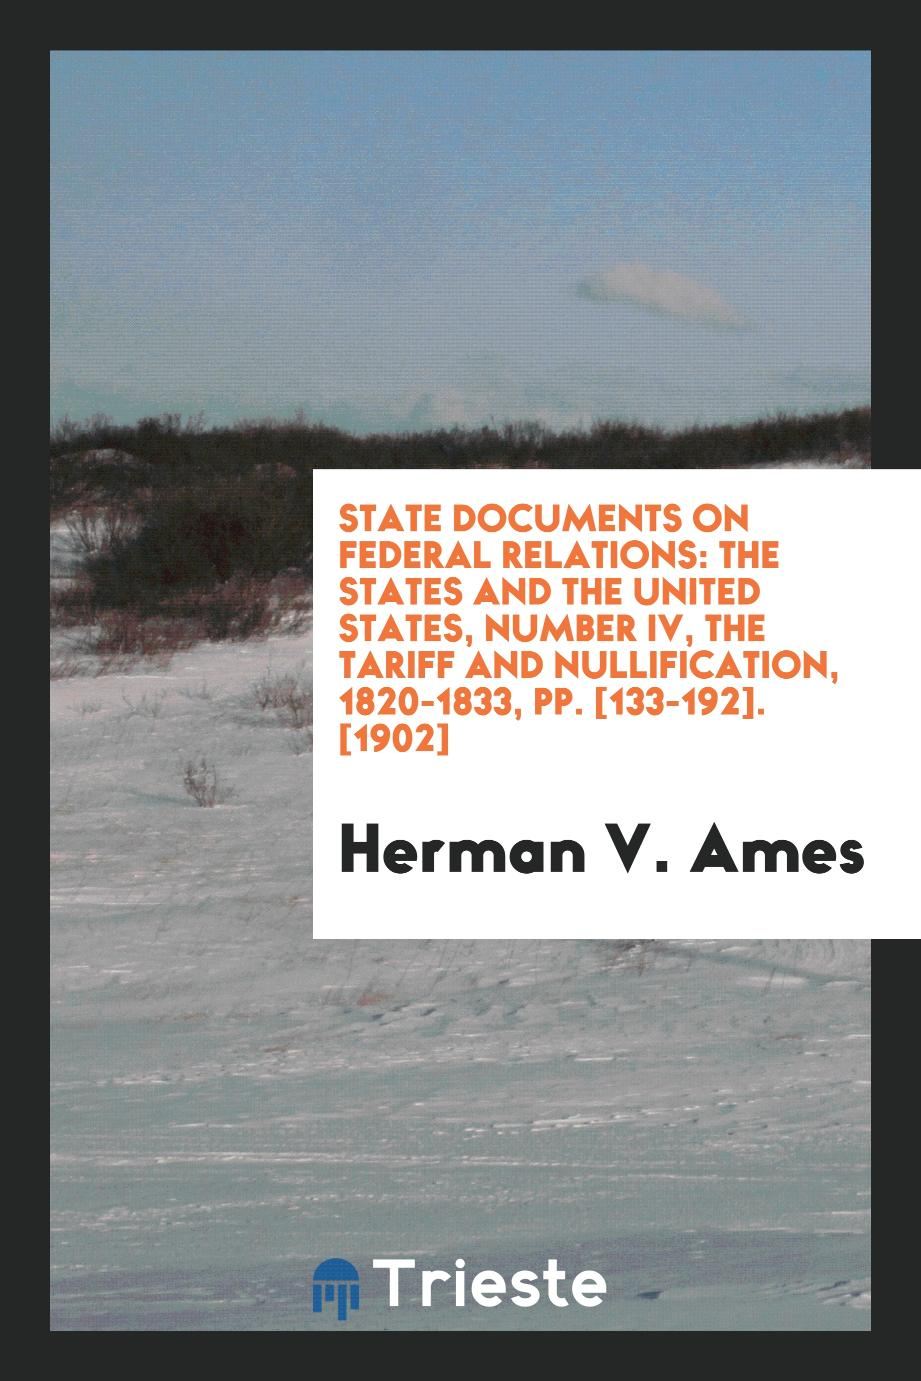 State Documents on Federal Relations: The States and the United States, Number IV, the Tariff and Nullification, 1820-1833, pp. [133-192]. [1902]